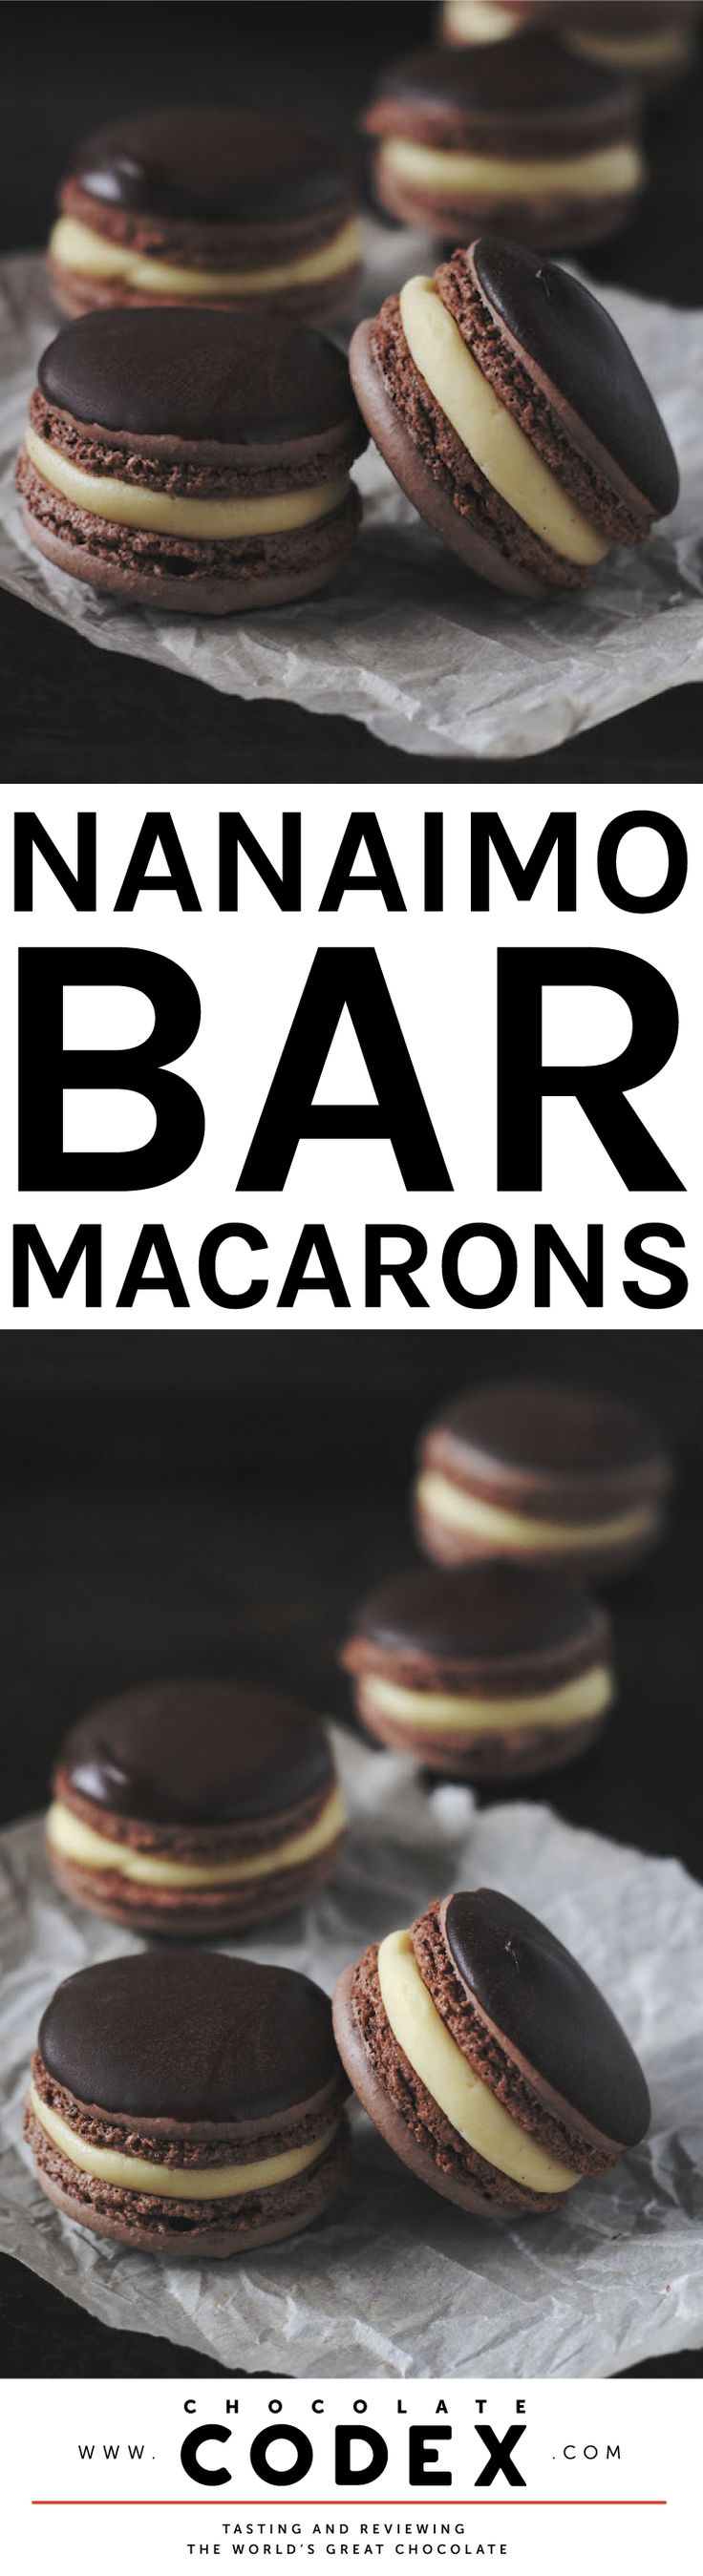 Nanaimo Bar Macarons - Yum!                                                                                                                                                                                 More